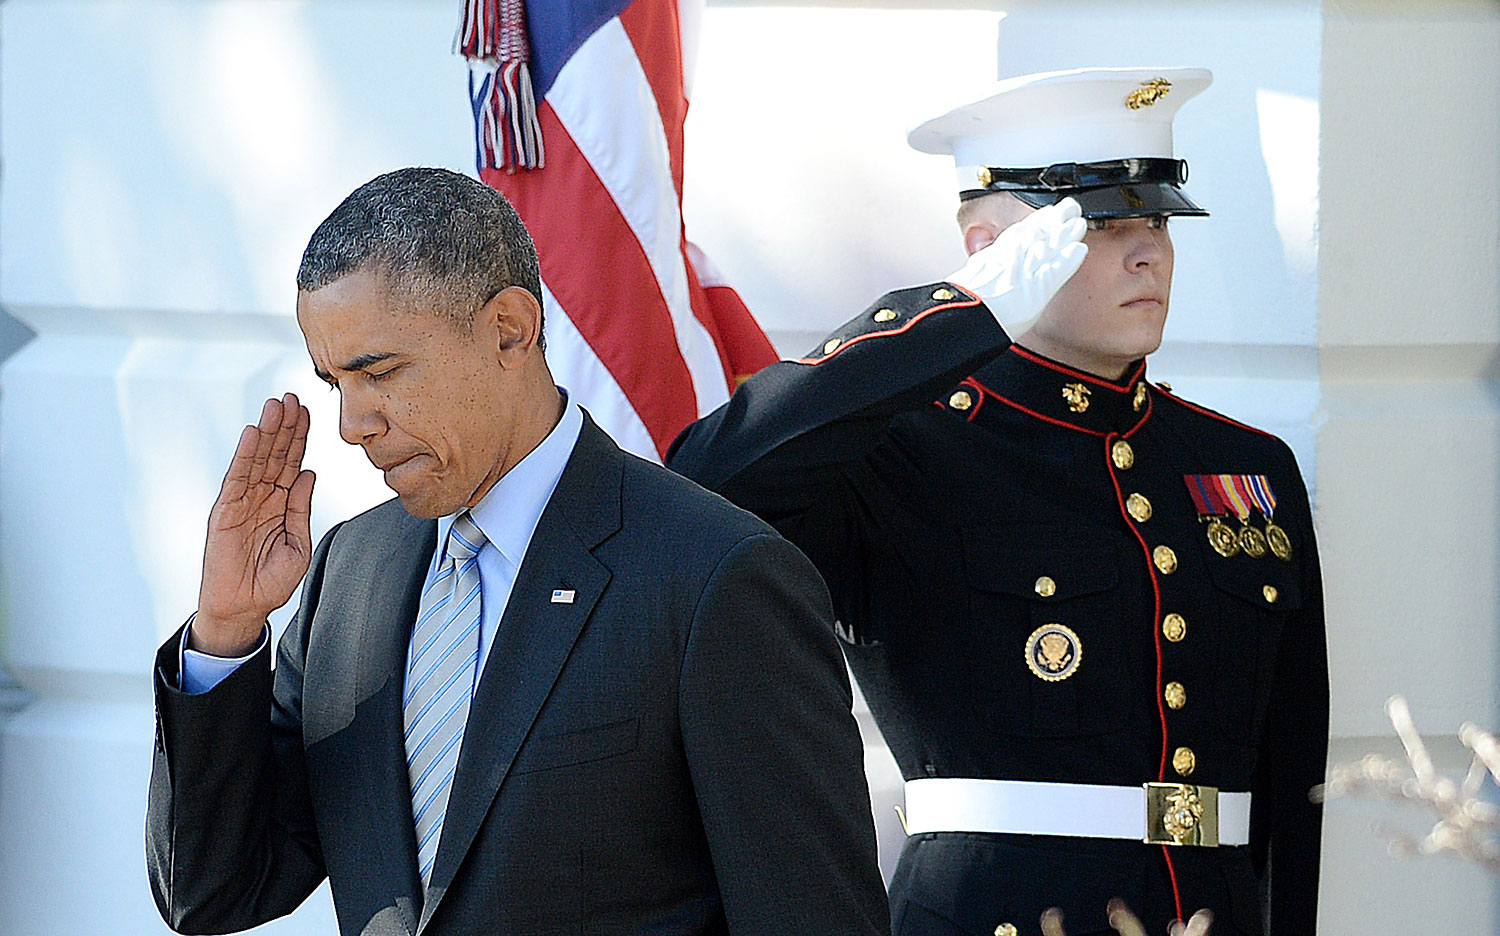 President Barack Obama on the South Lawn of the White House on March 10, 2014.